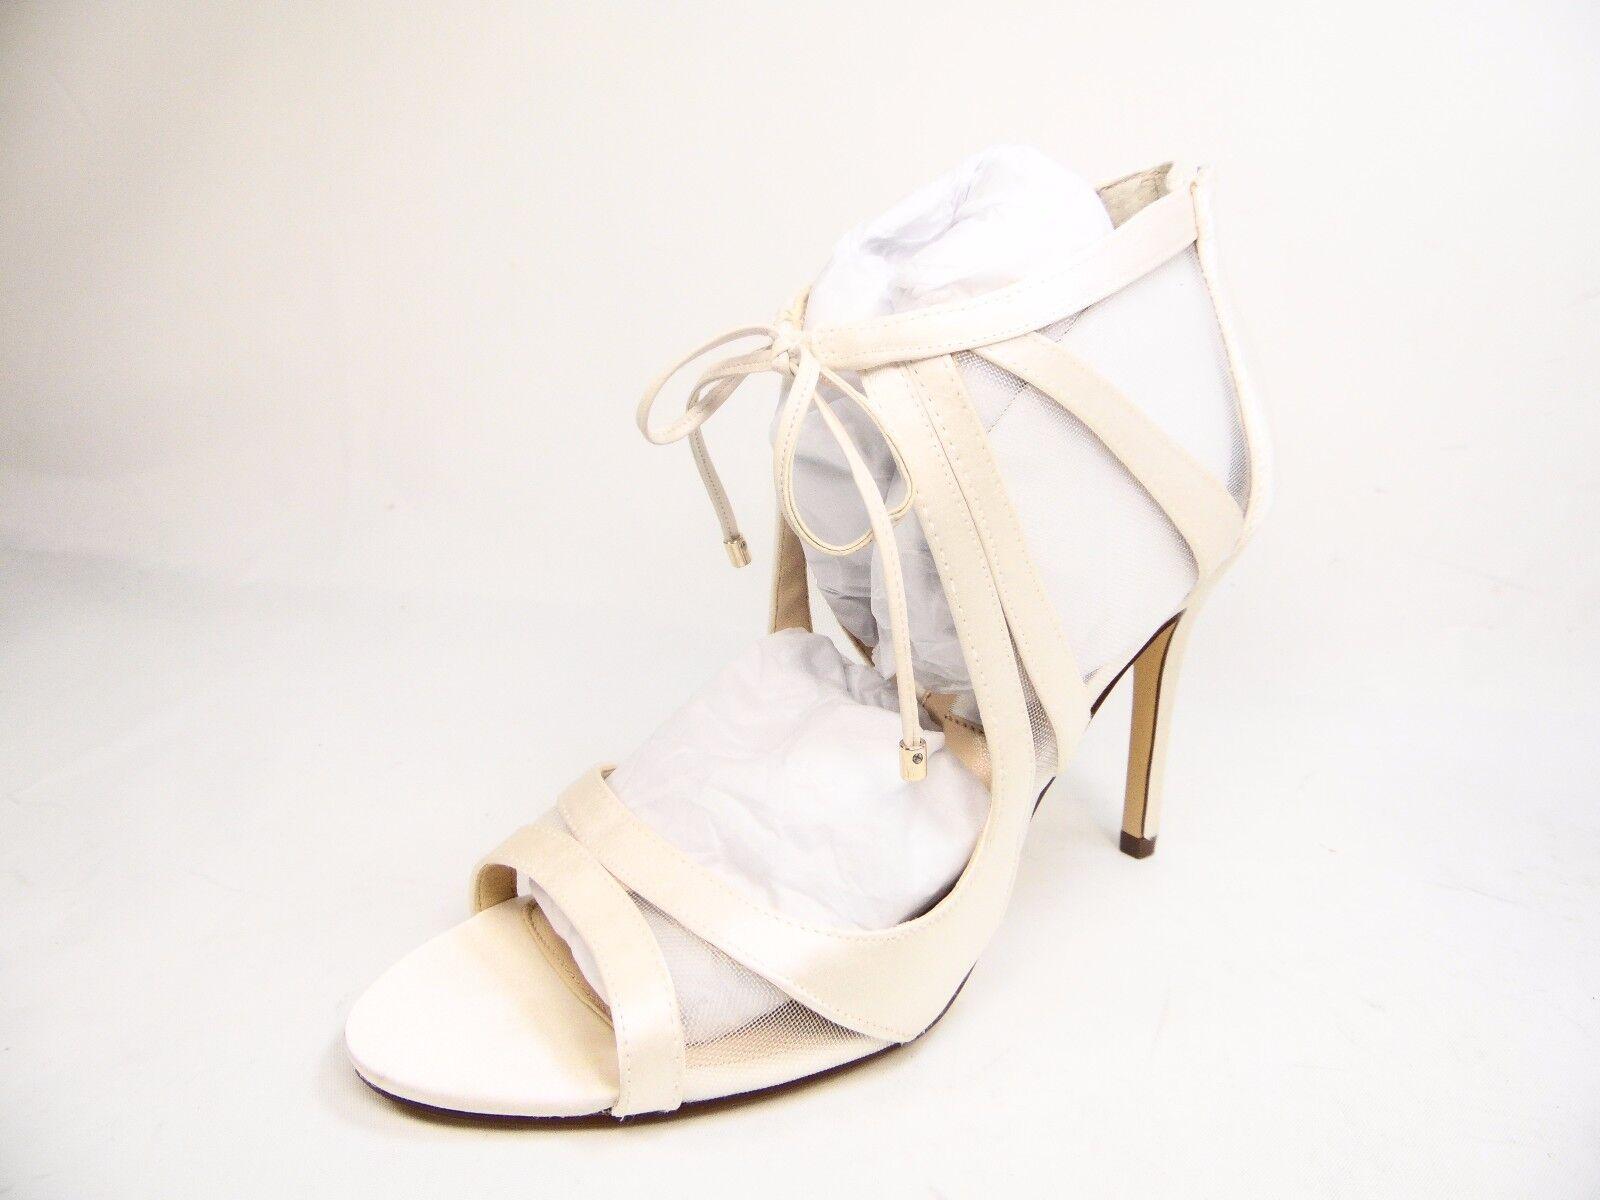 Nina Women's Cherie-Ym Dress Pump Ivory Size 7M